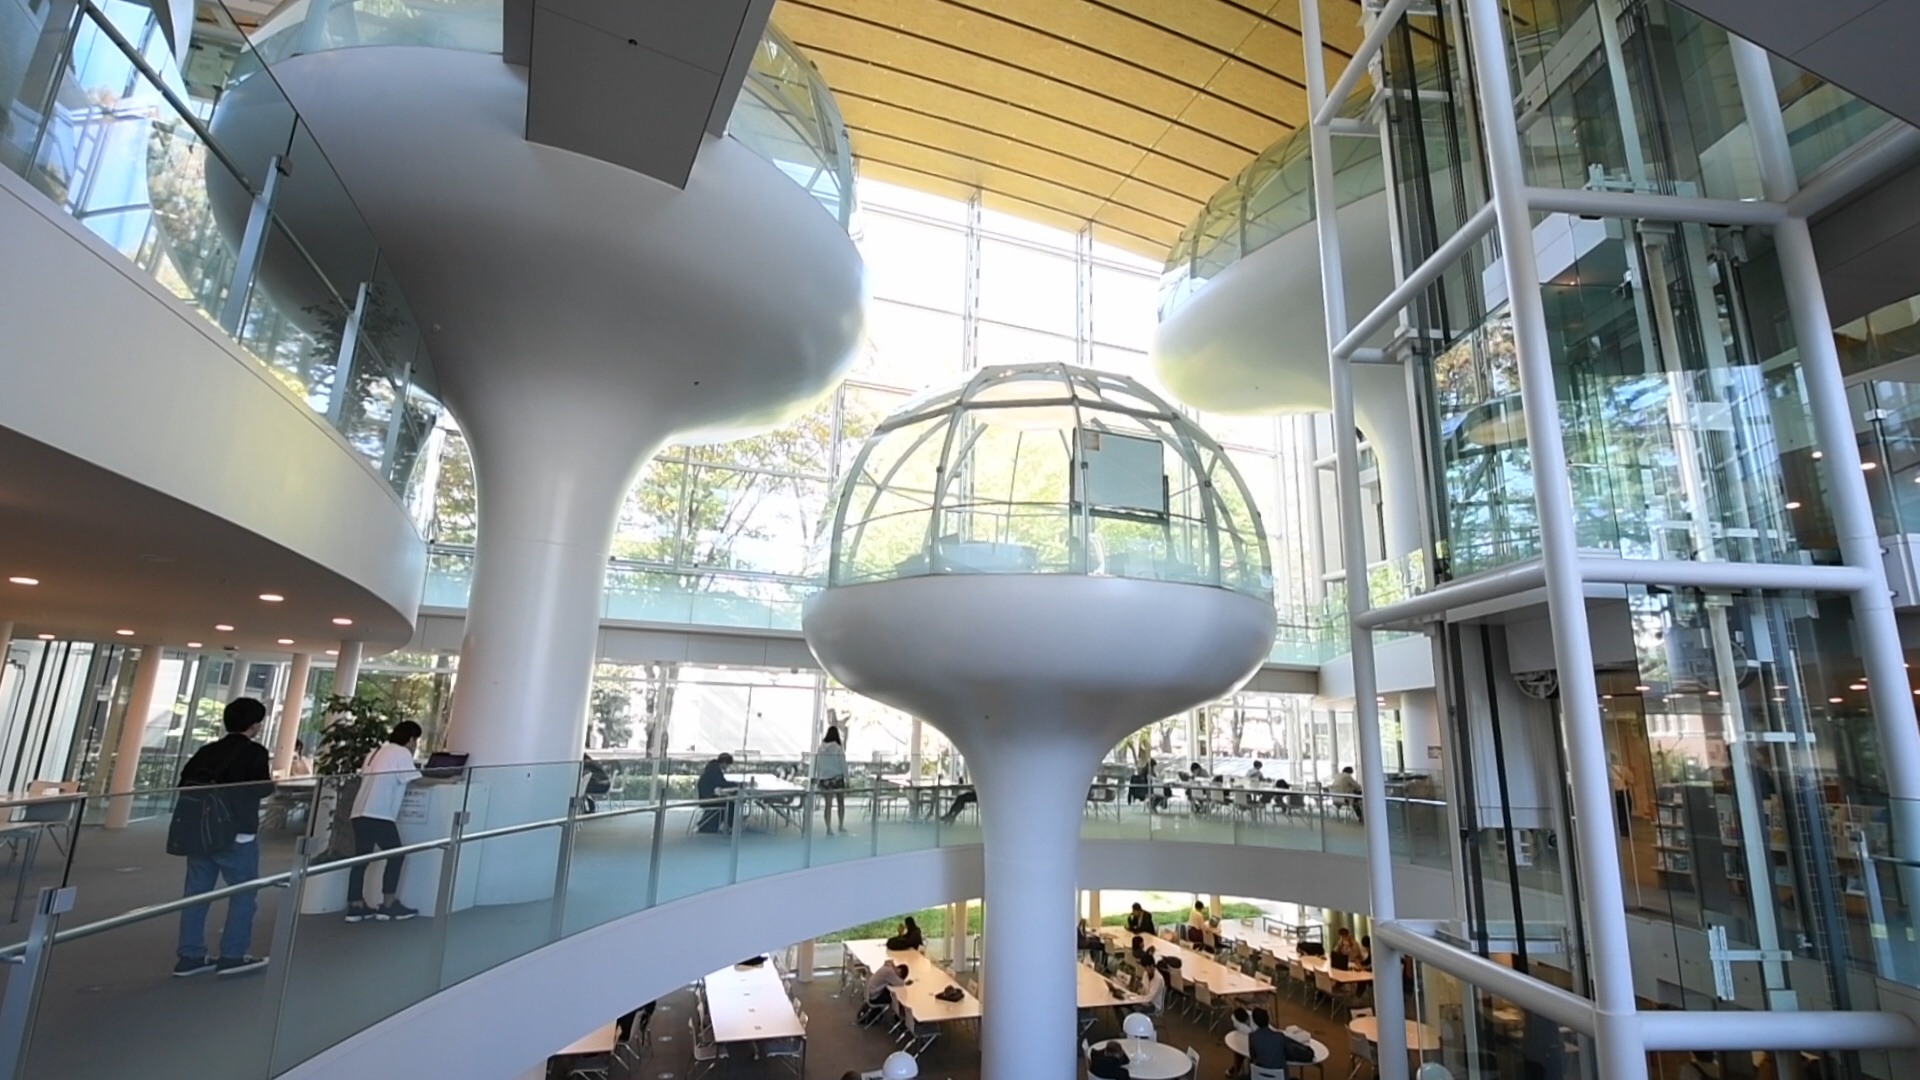 [Hidden Wonders of Japan] Spaceship or Library? It's Both at Seikei University